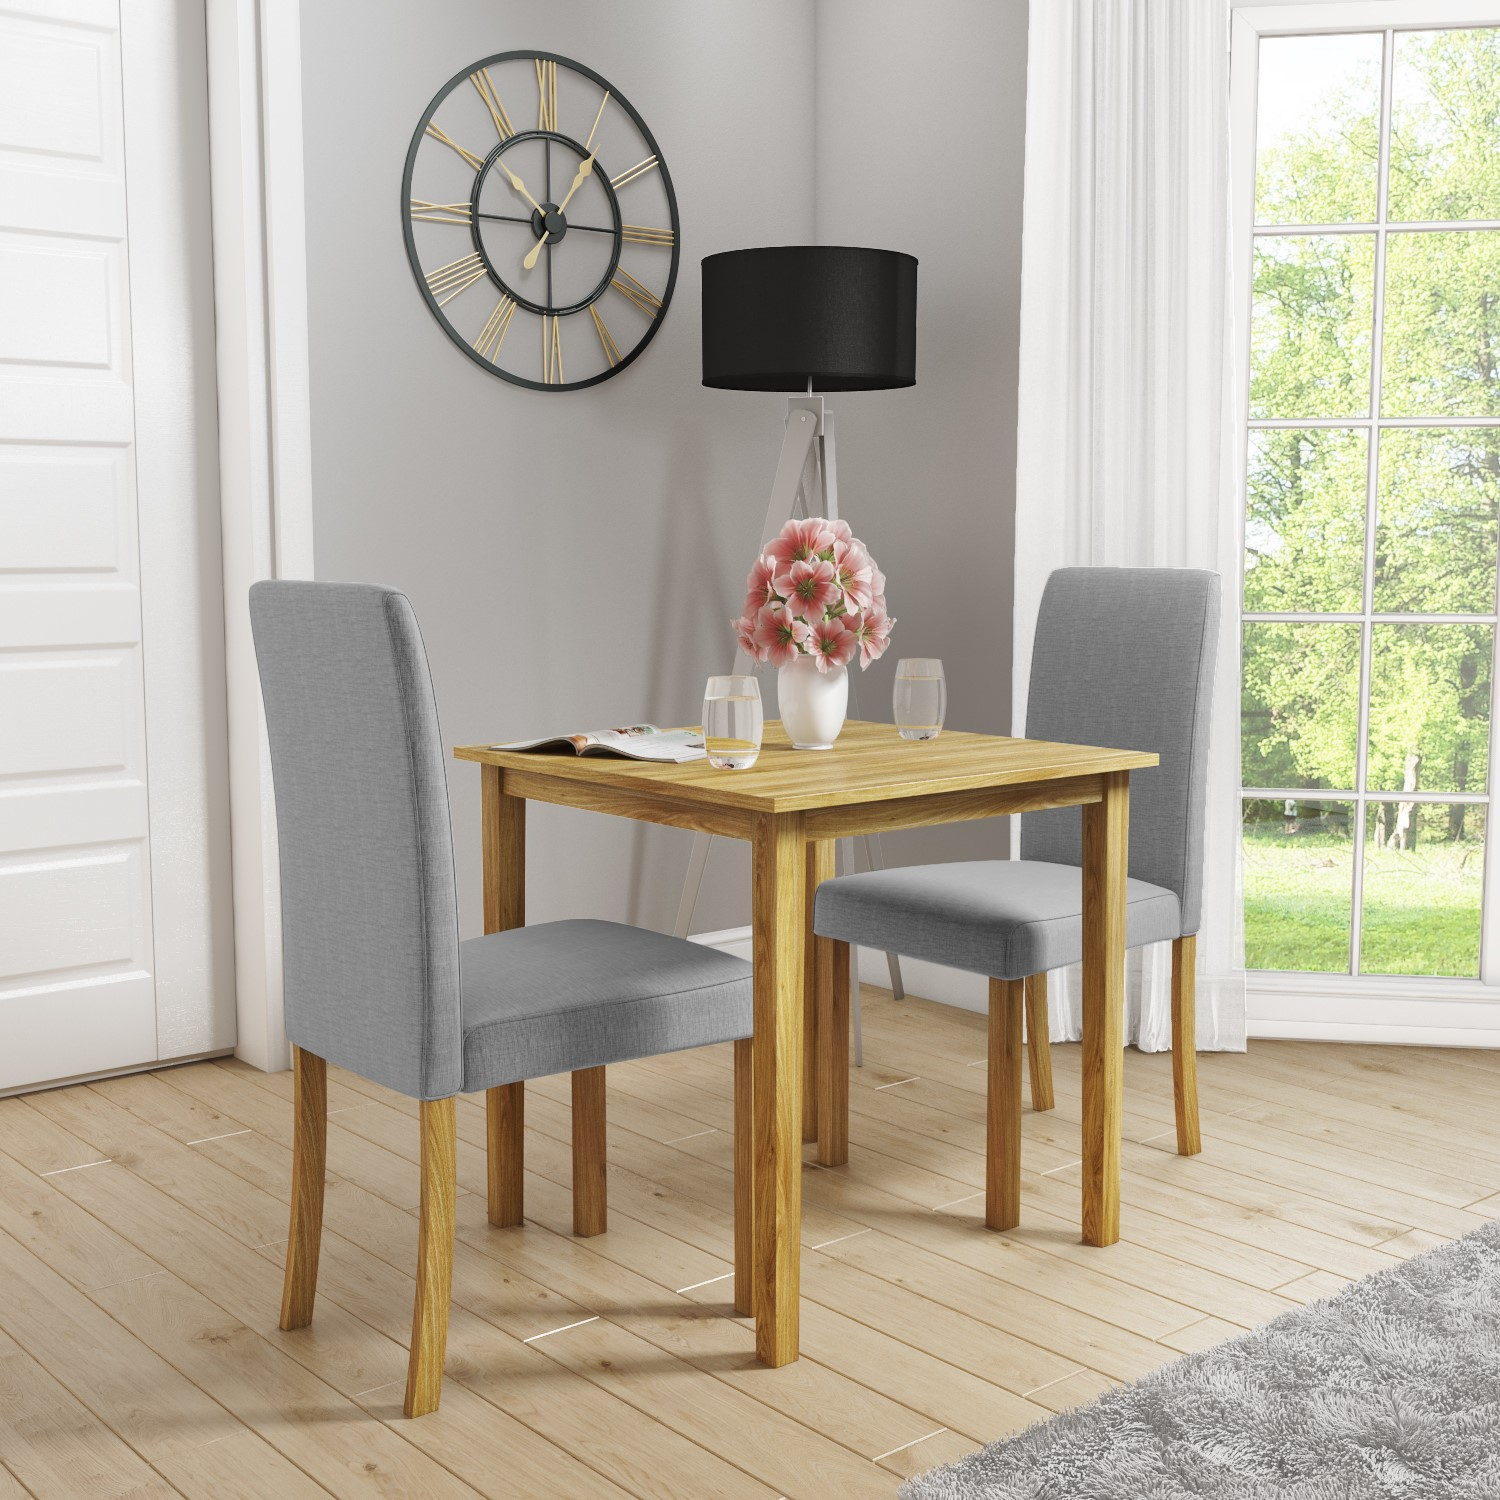 Details about New Haven Small Kitchen Dining Set With 10 Grey Upholstered  Chairs